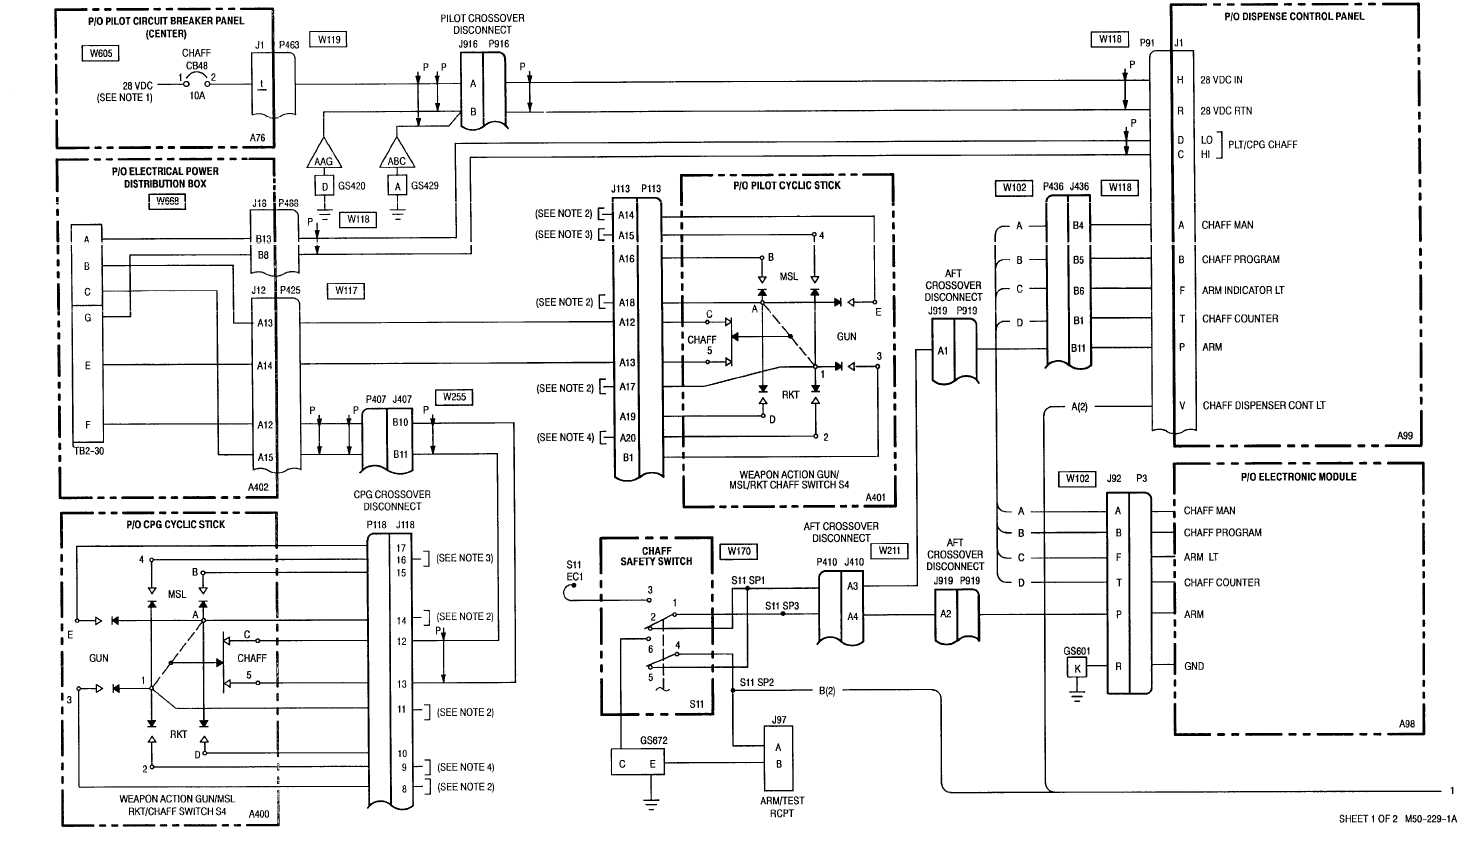 7 1 Chaff Dispenser Wiring Diagram Sheet 1 Of 2 M50 229 1a